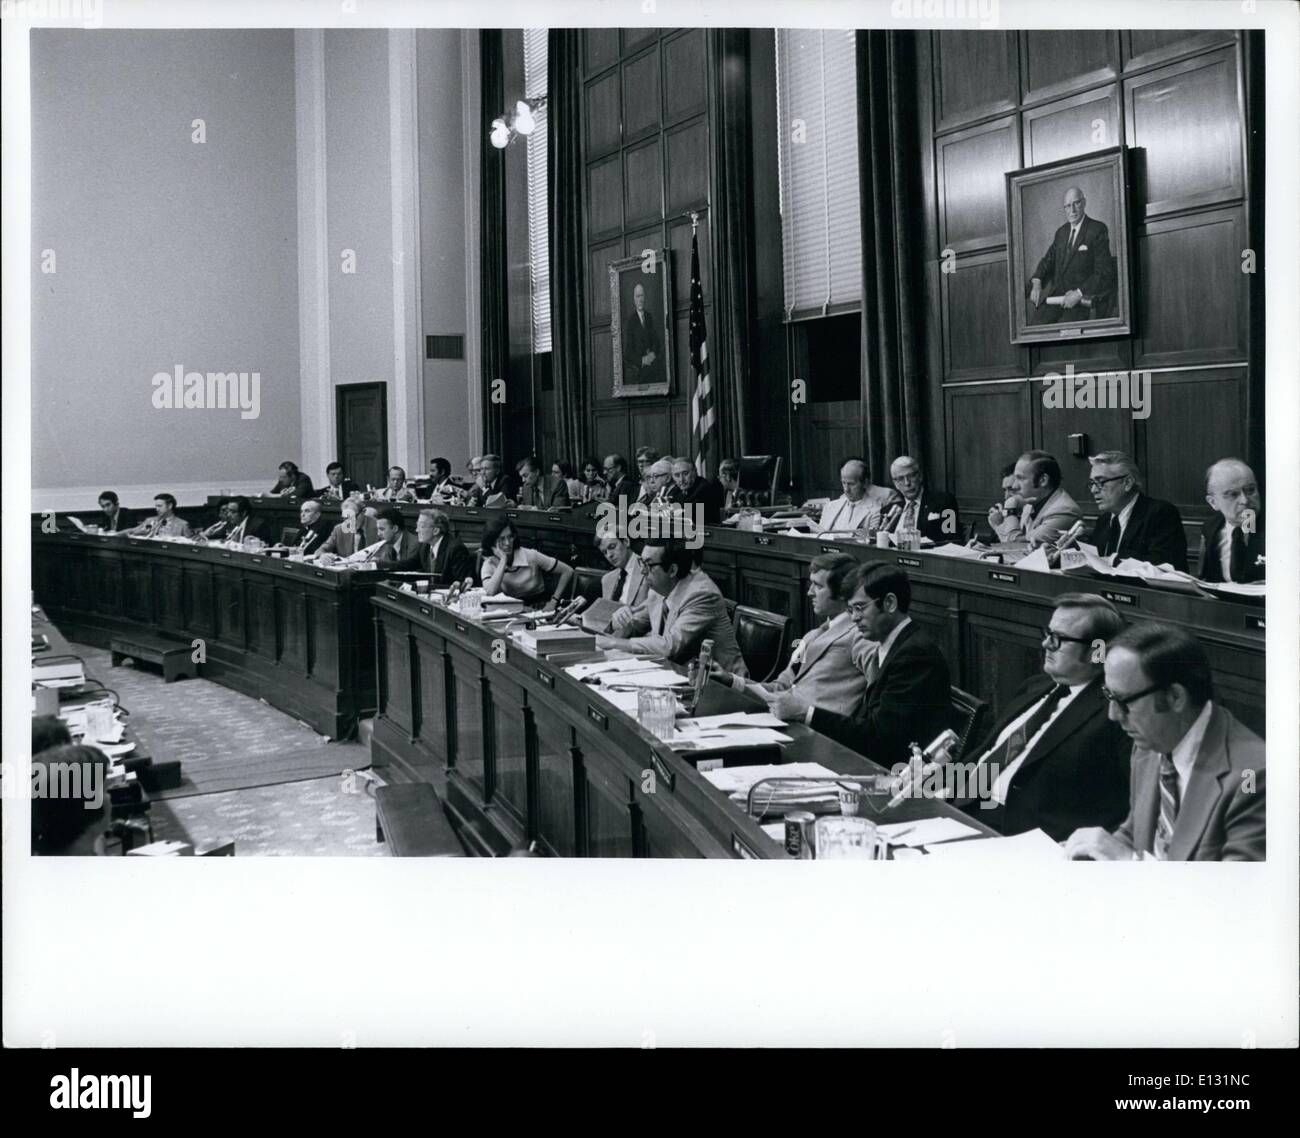 Feb. 26, 2012 - House Judiciary Committee during Independent Hearings of Pres Richard Nixon - Stock Image